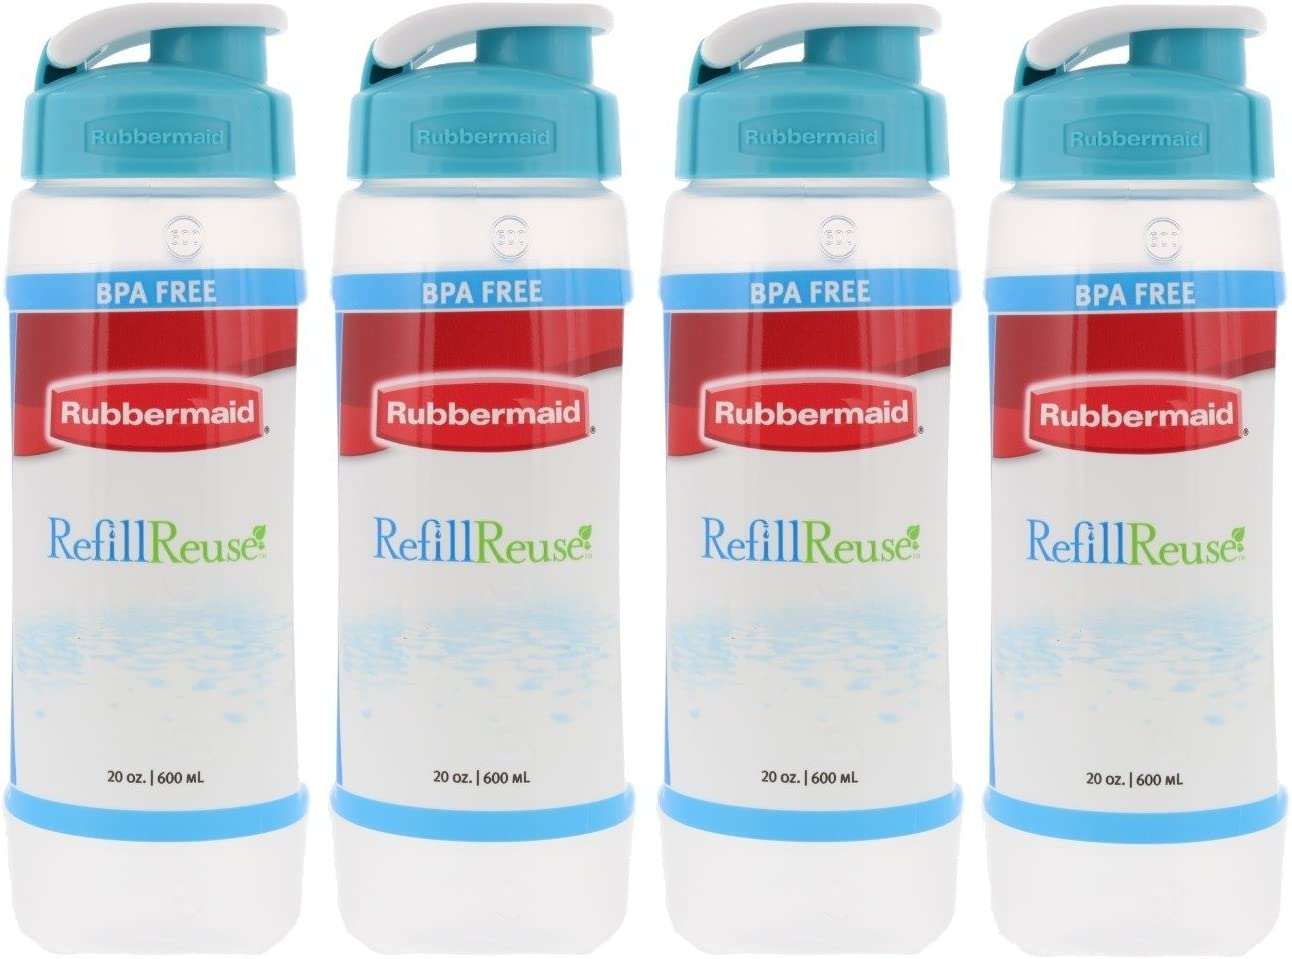 Pack Of 4 Rubbermaid Refill Reuse 20 Ounce Chug Clear Bottles Dishwasher Safe